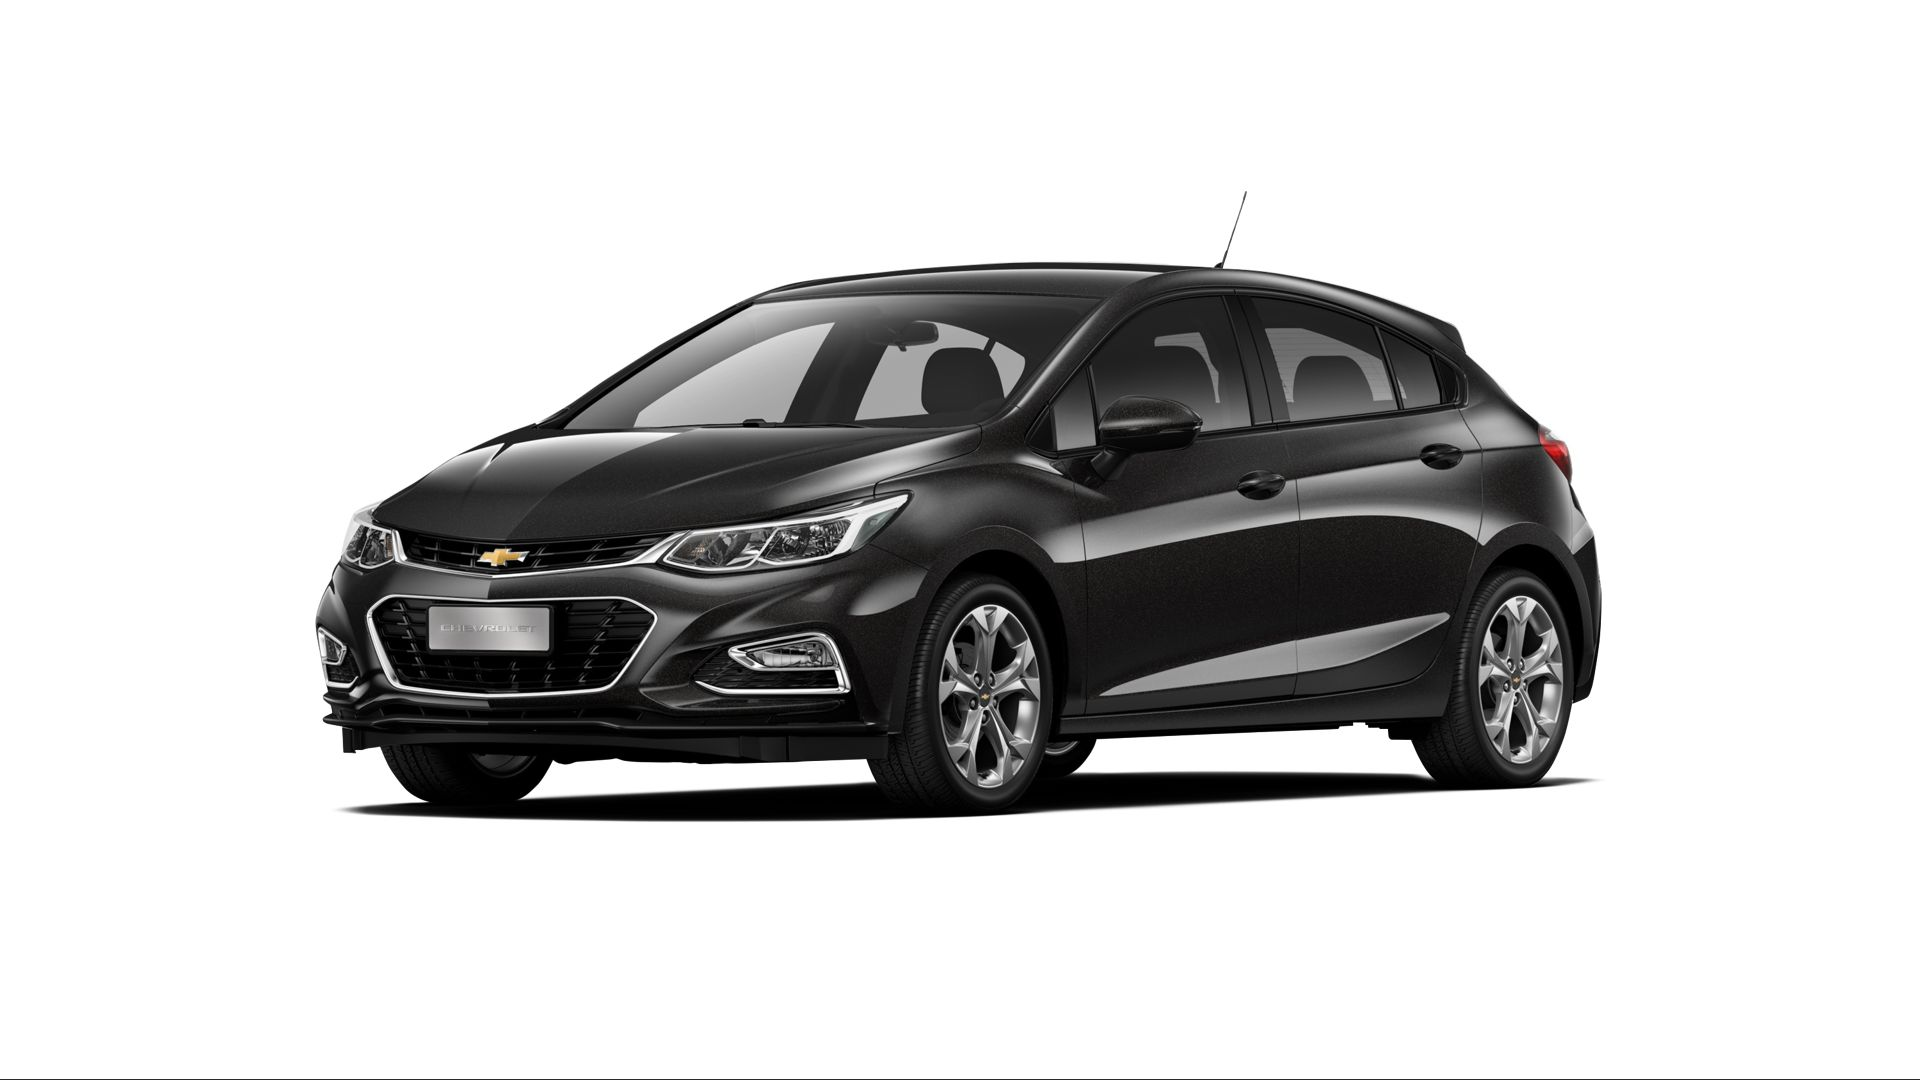 CHEVROLET CRUZE SPORT6 TURBO LT 1.4 2019